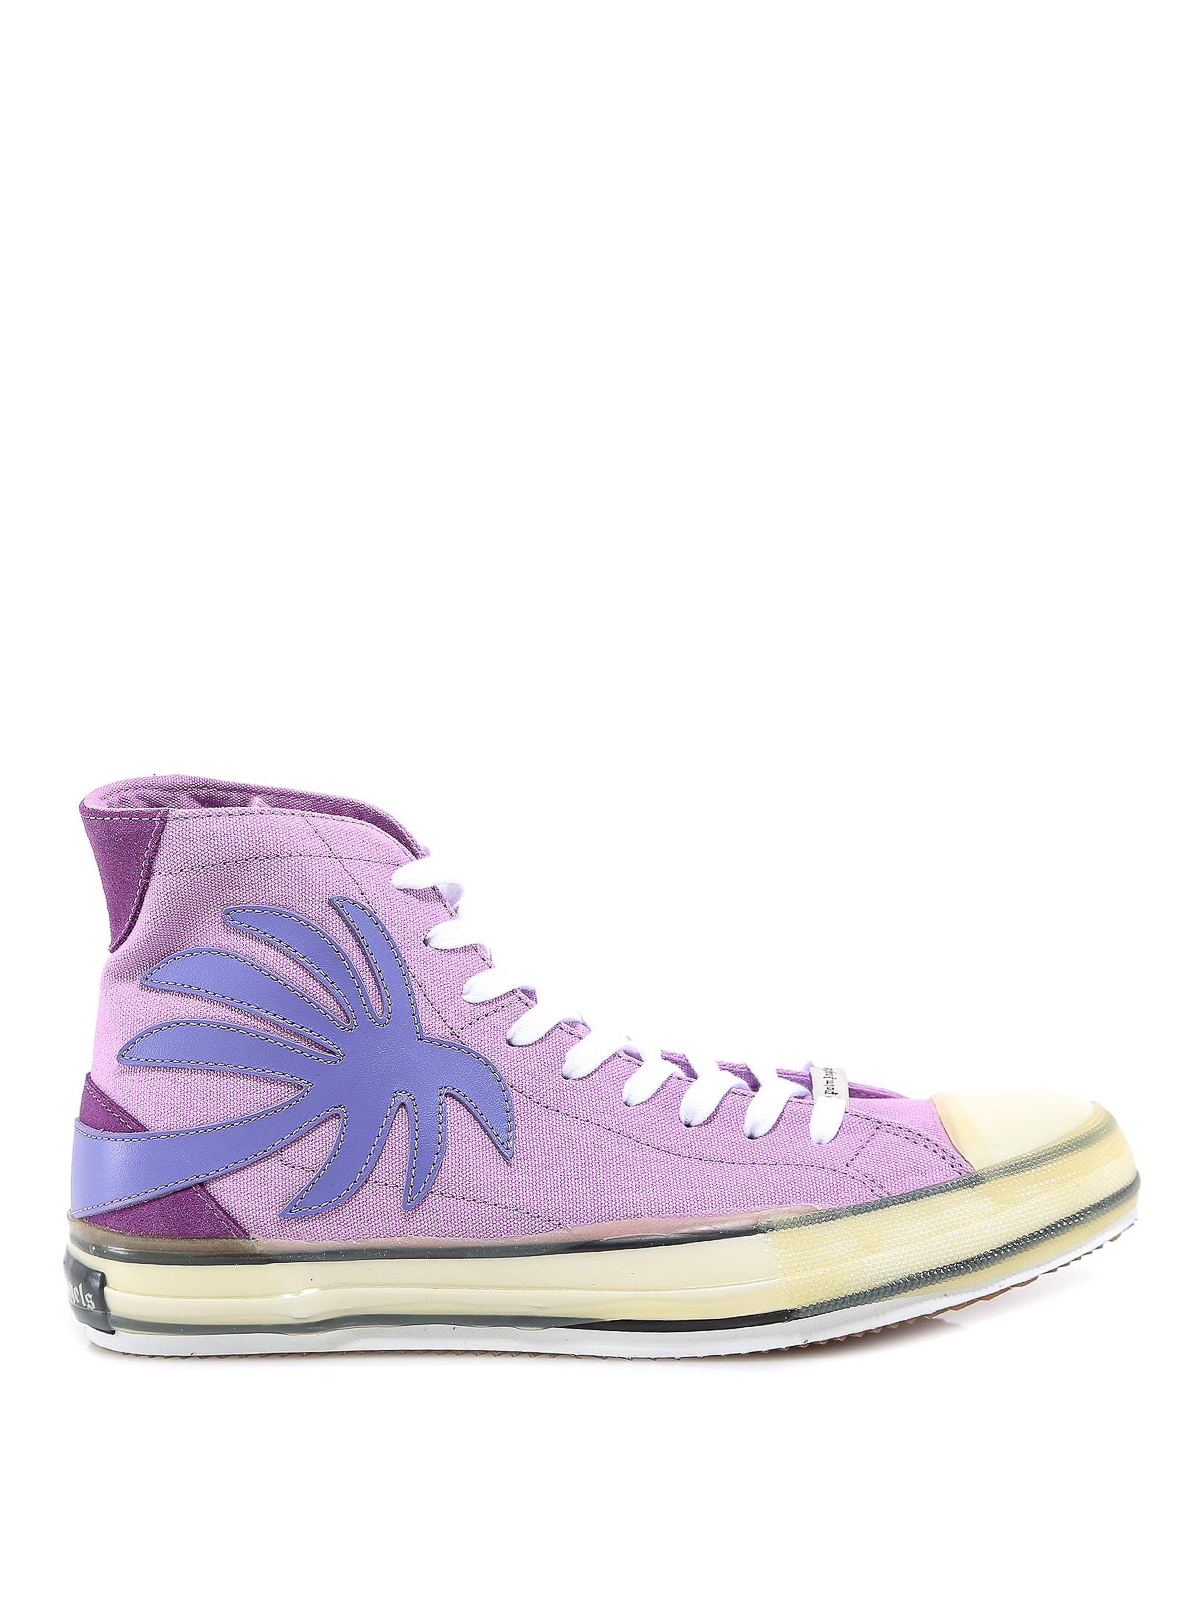 Palm Angels Canvases PALM PATCH CANVAS SNEAKERS